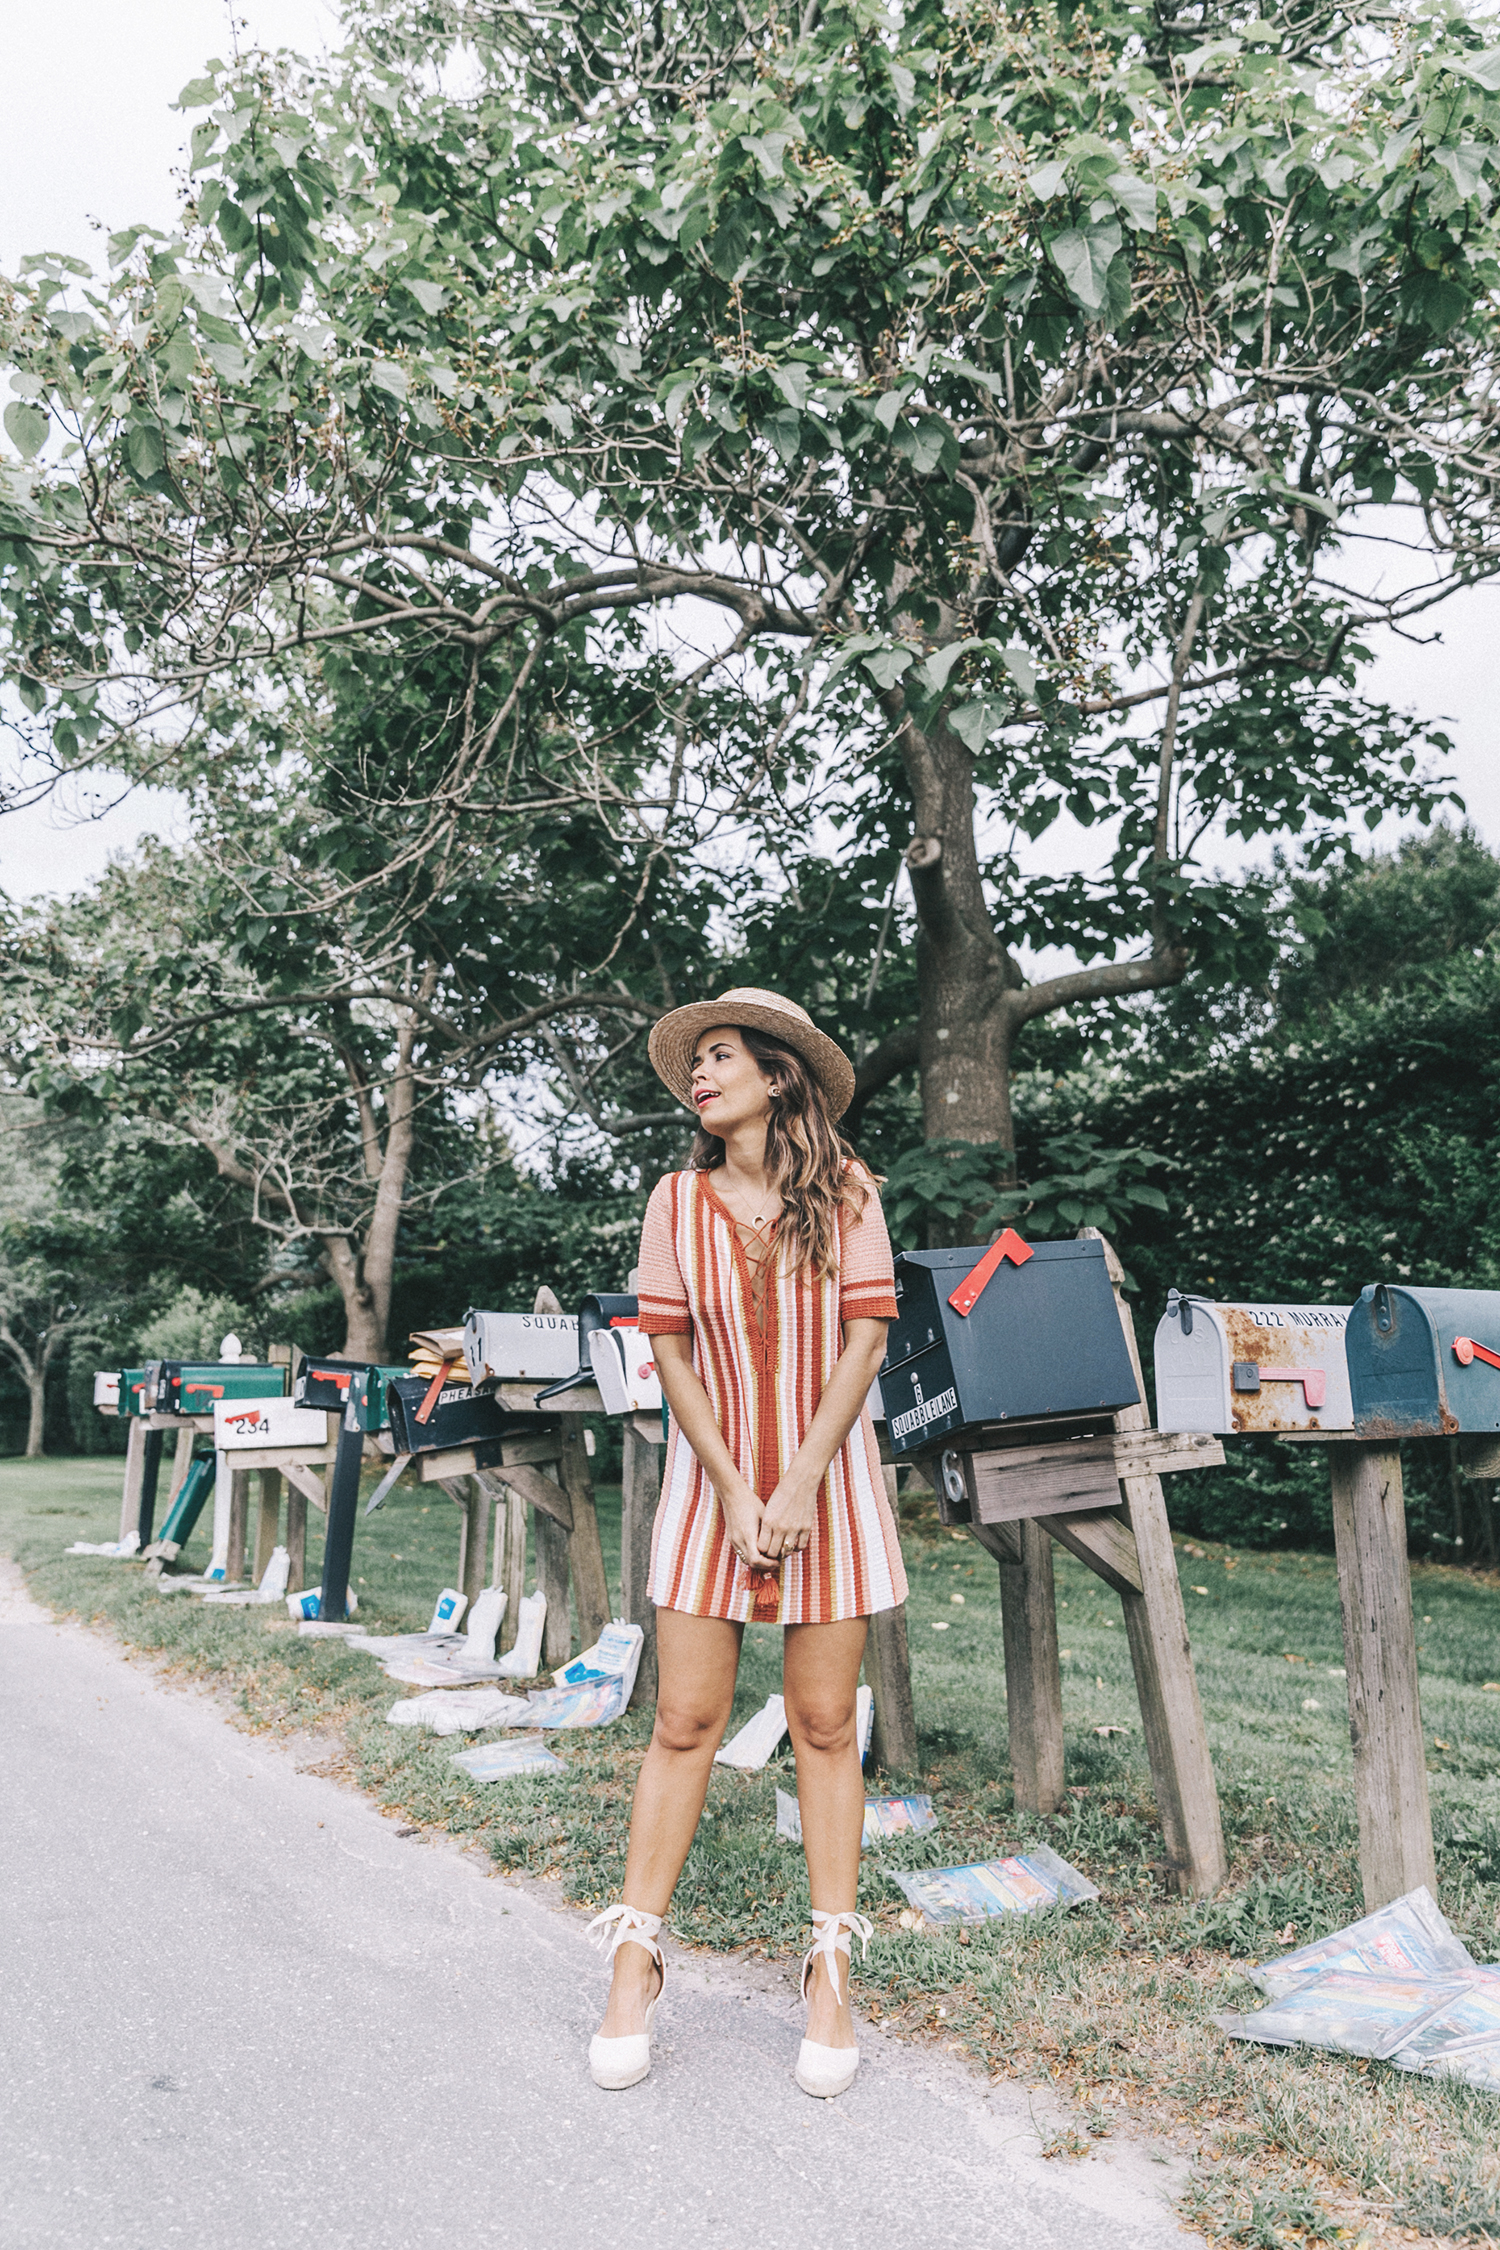 Revolve_in_The_Hamptons-Revolve_Clothing-Collage_Vintage-Free_People_Lace_Dress-Knitted_Dress-Soludos_Espadrilles-Canotier-Hat-Outfit-12